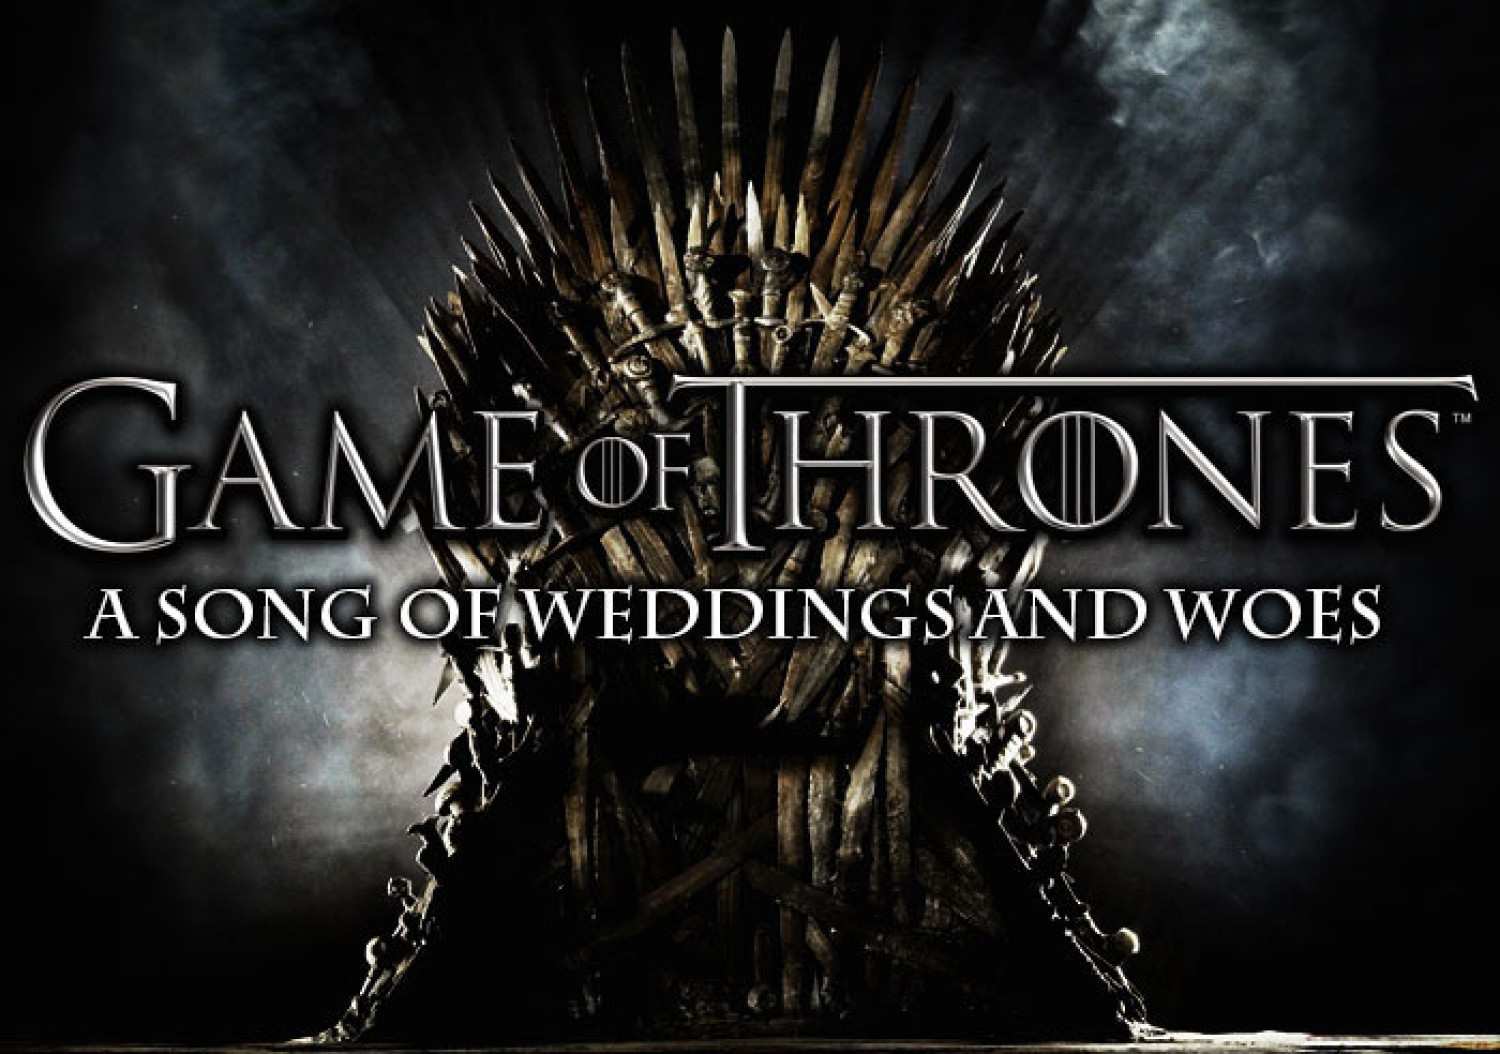 Game of Thrones: A Song of Weddings and Woes | Visual.ly